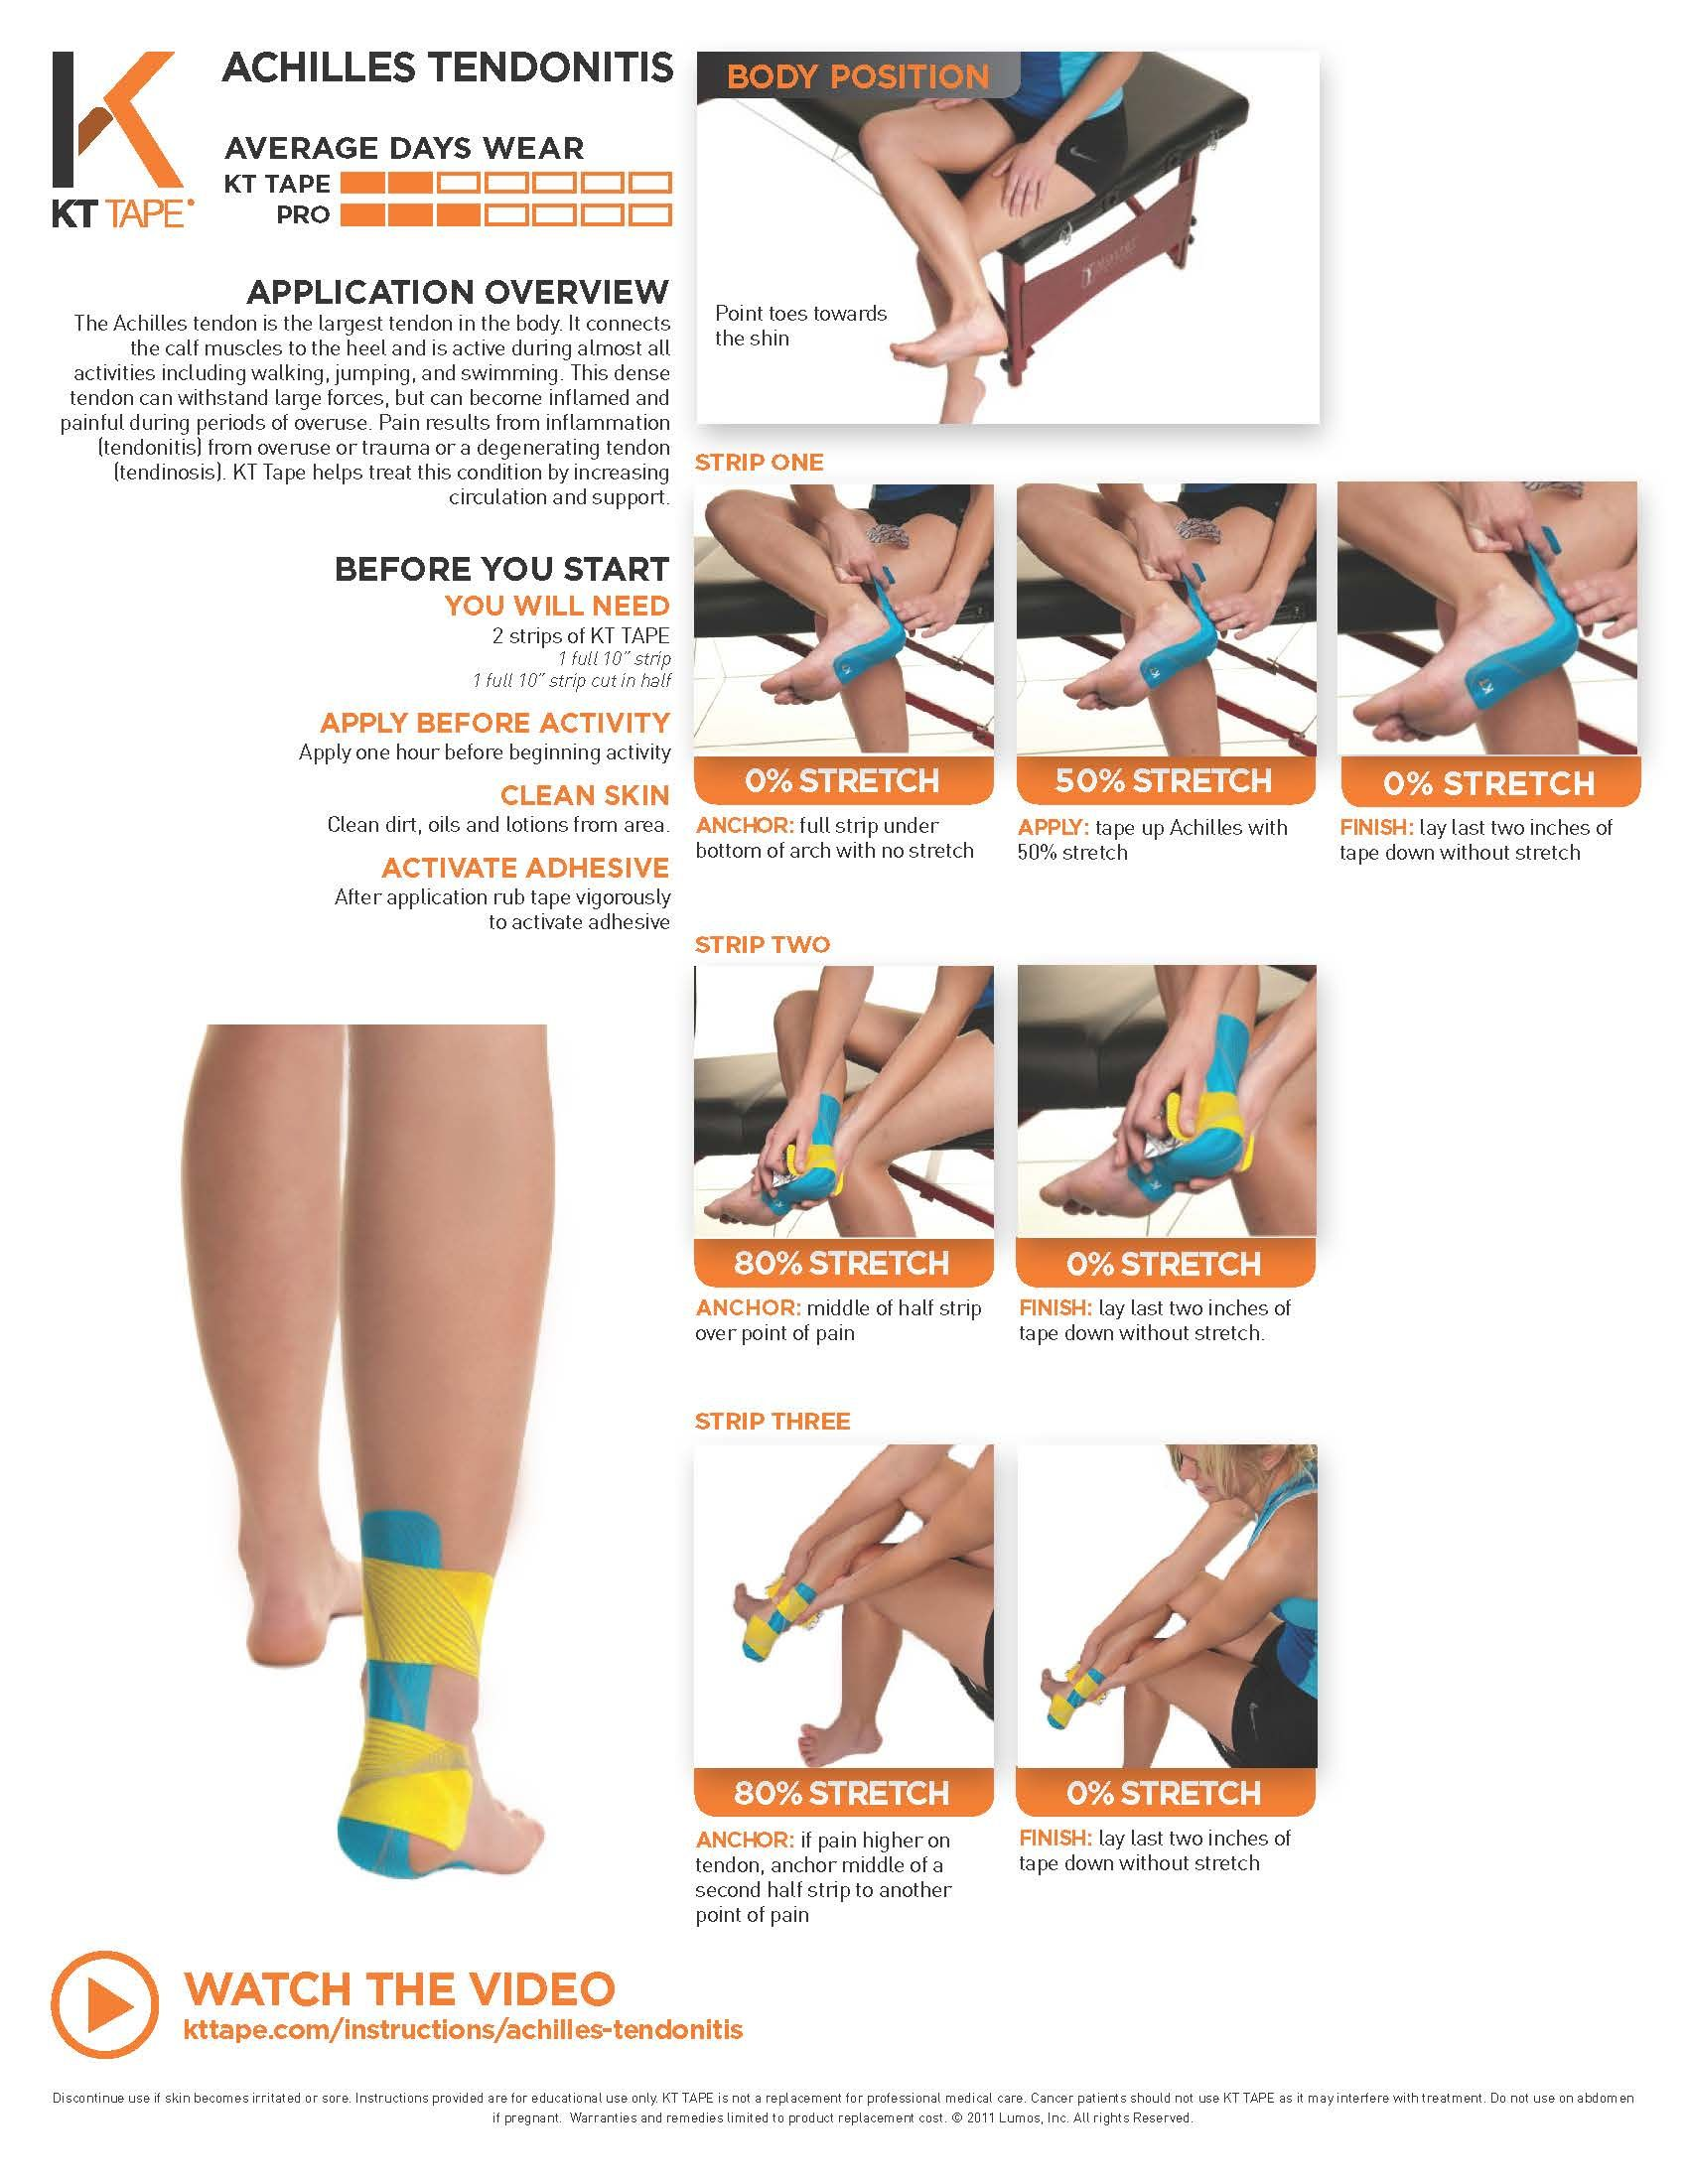 Achilles Tendonitis Taping Kt Tape Helps Treat This Condition By Increasing Circulation And Support Achilles Tendonitis Kinesiology Taping Achilles